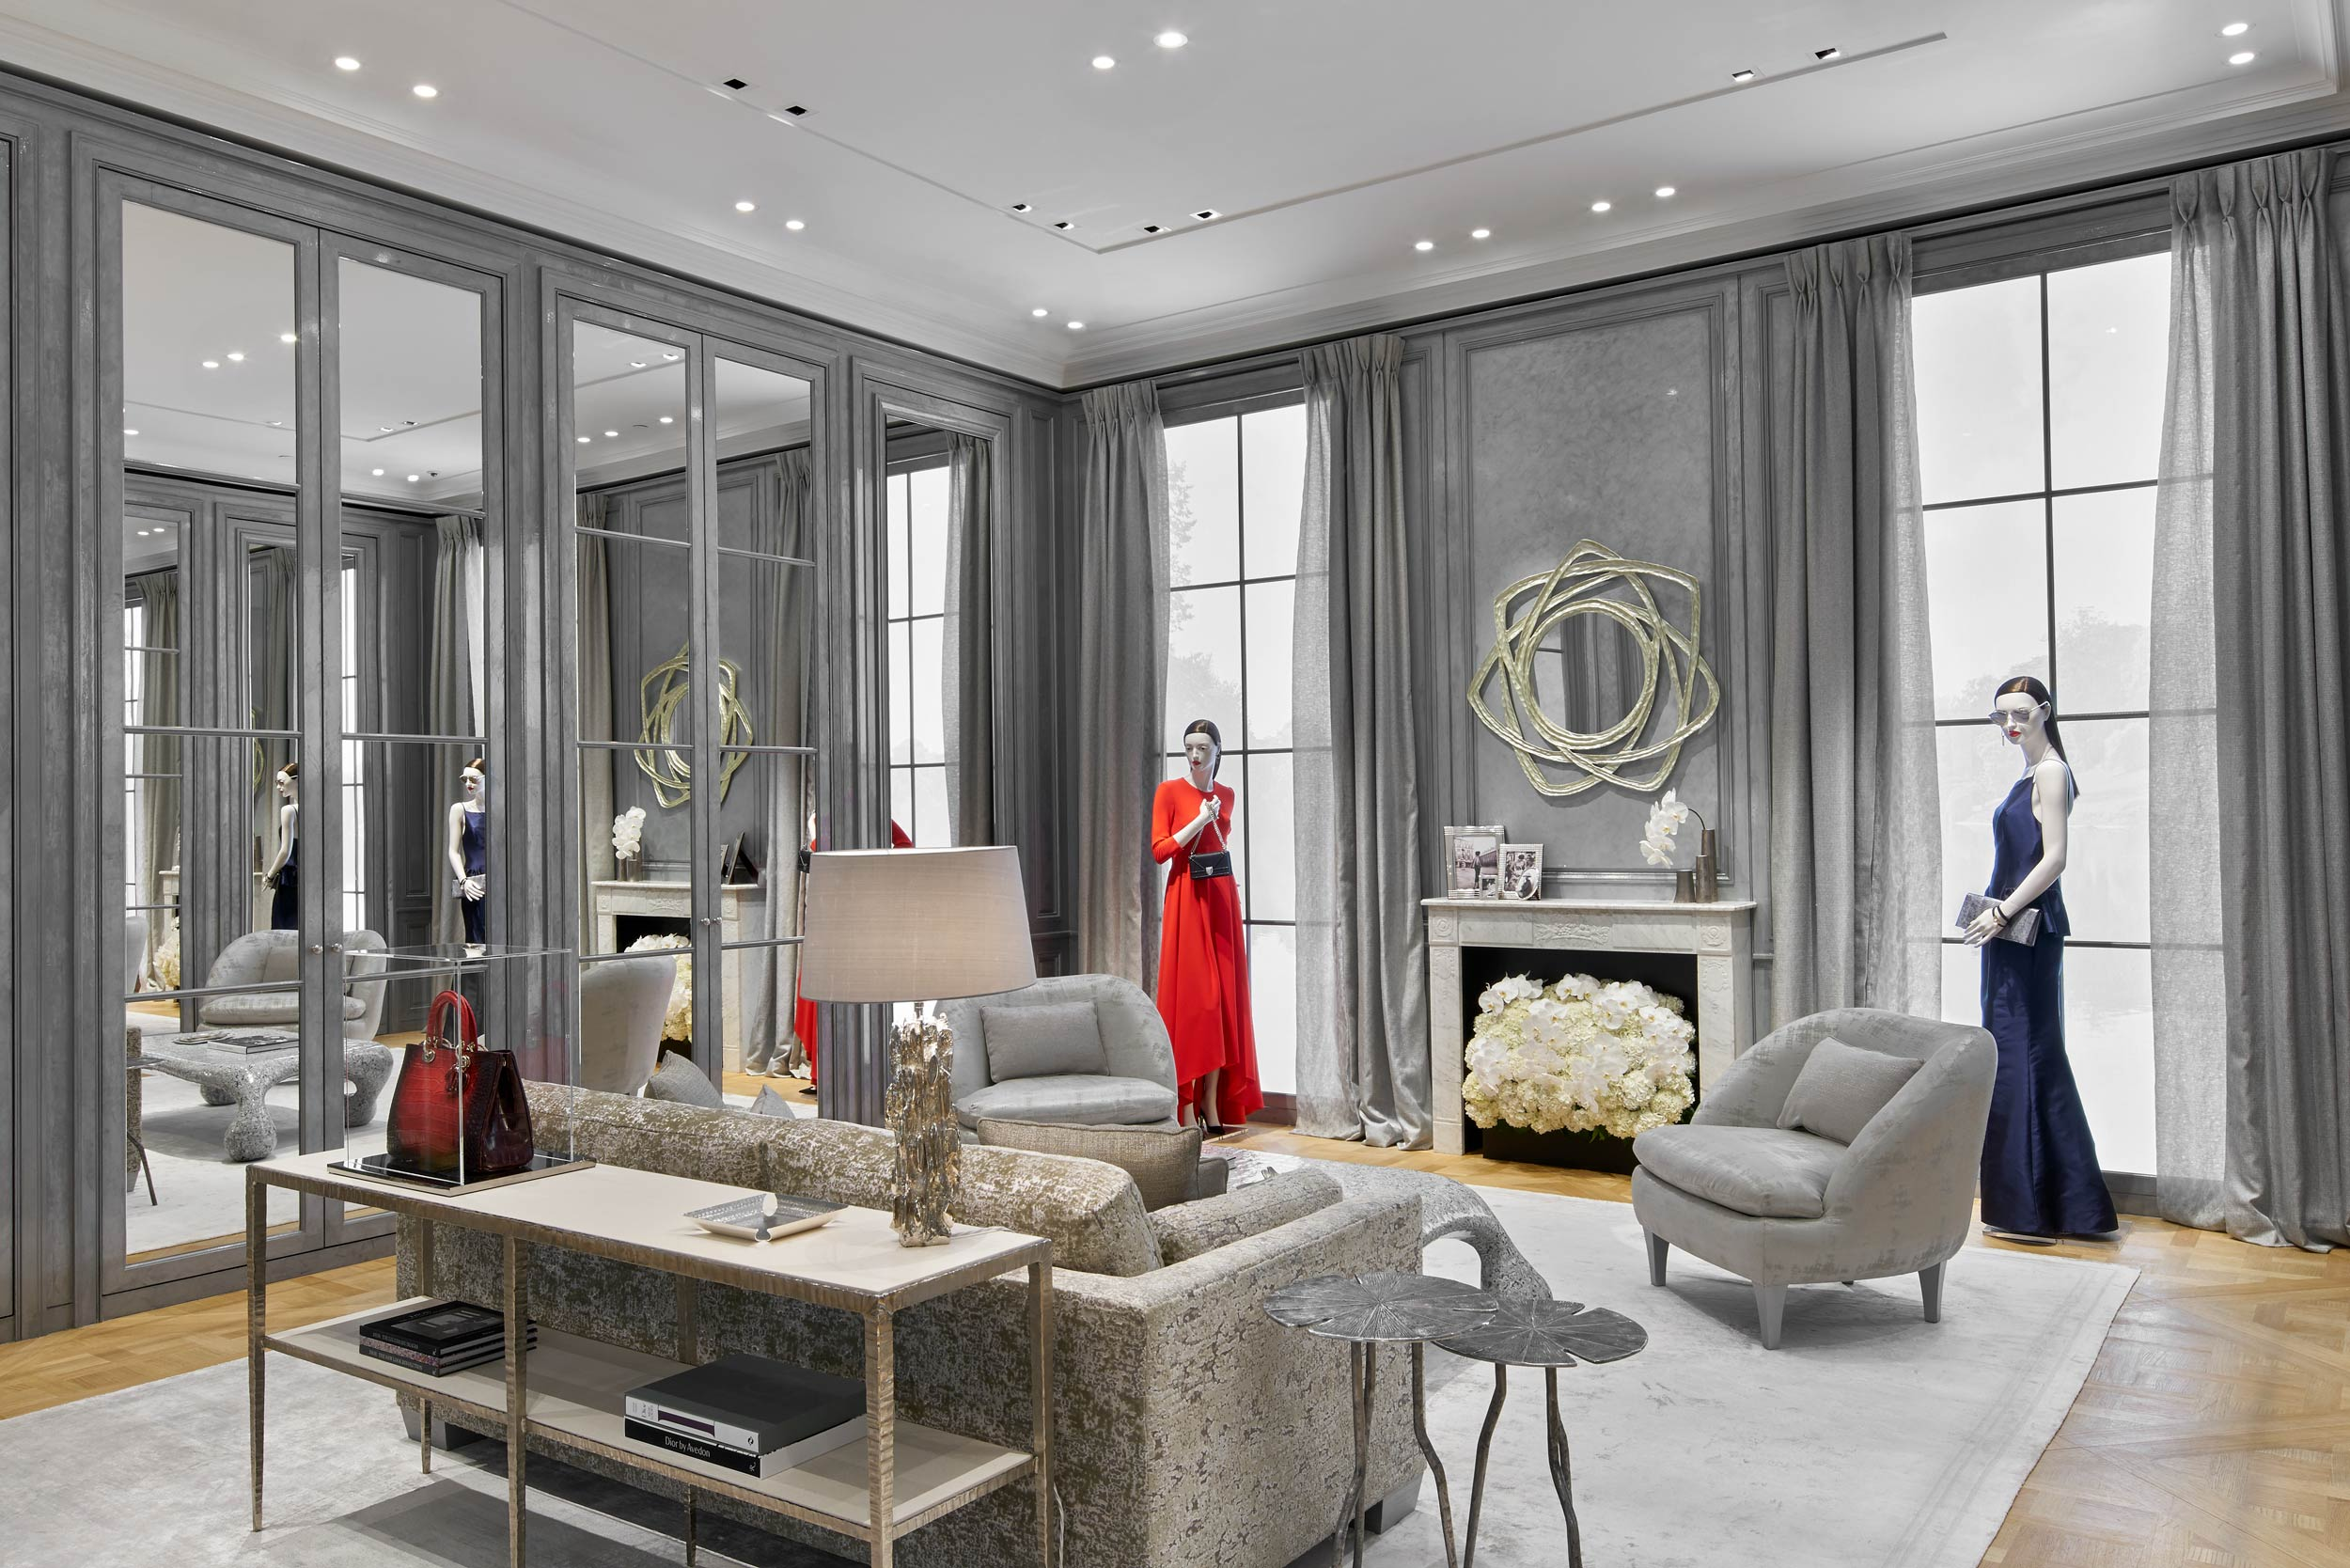 Dior-boutique-ION-Orchard-Singapore